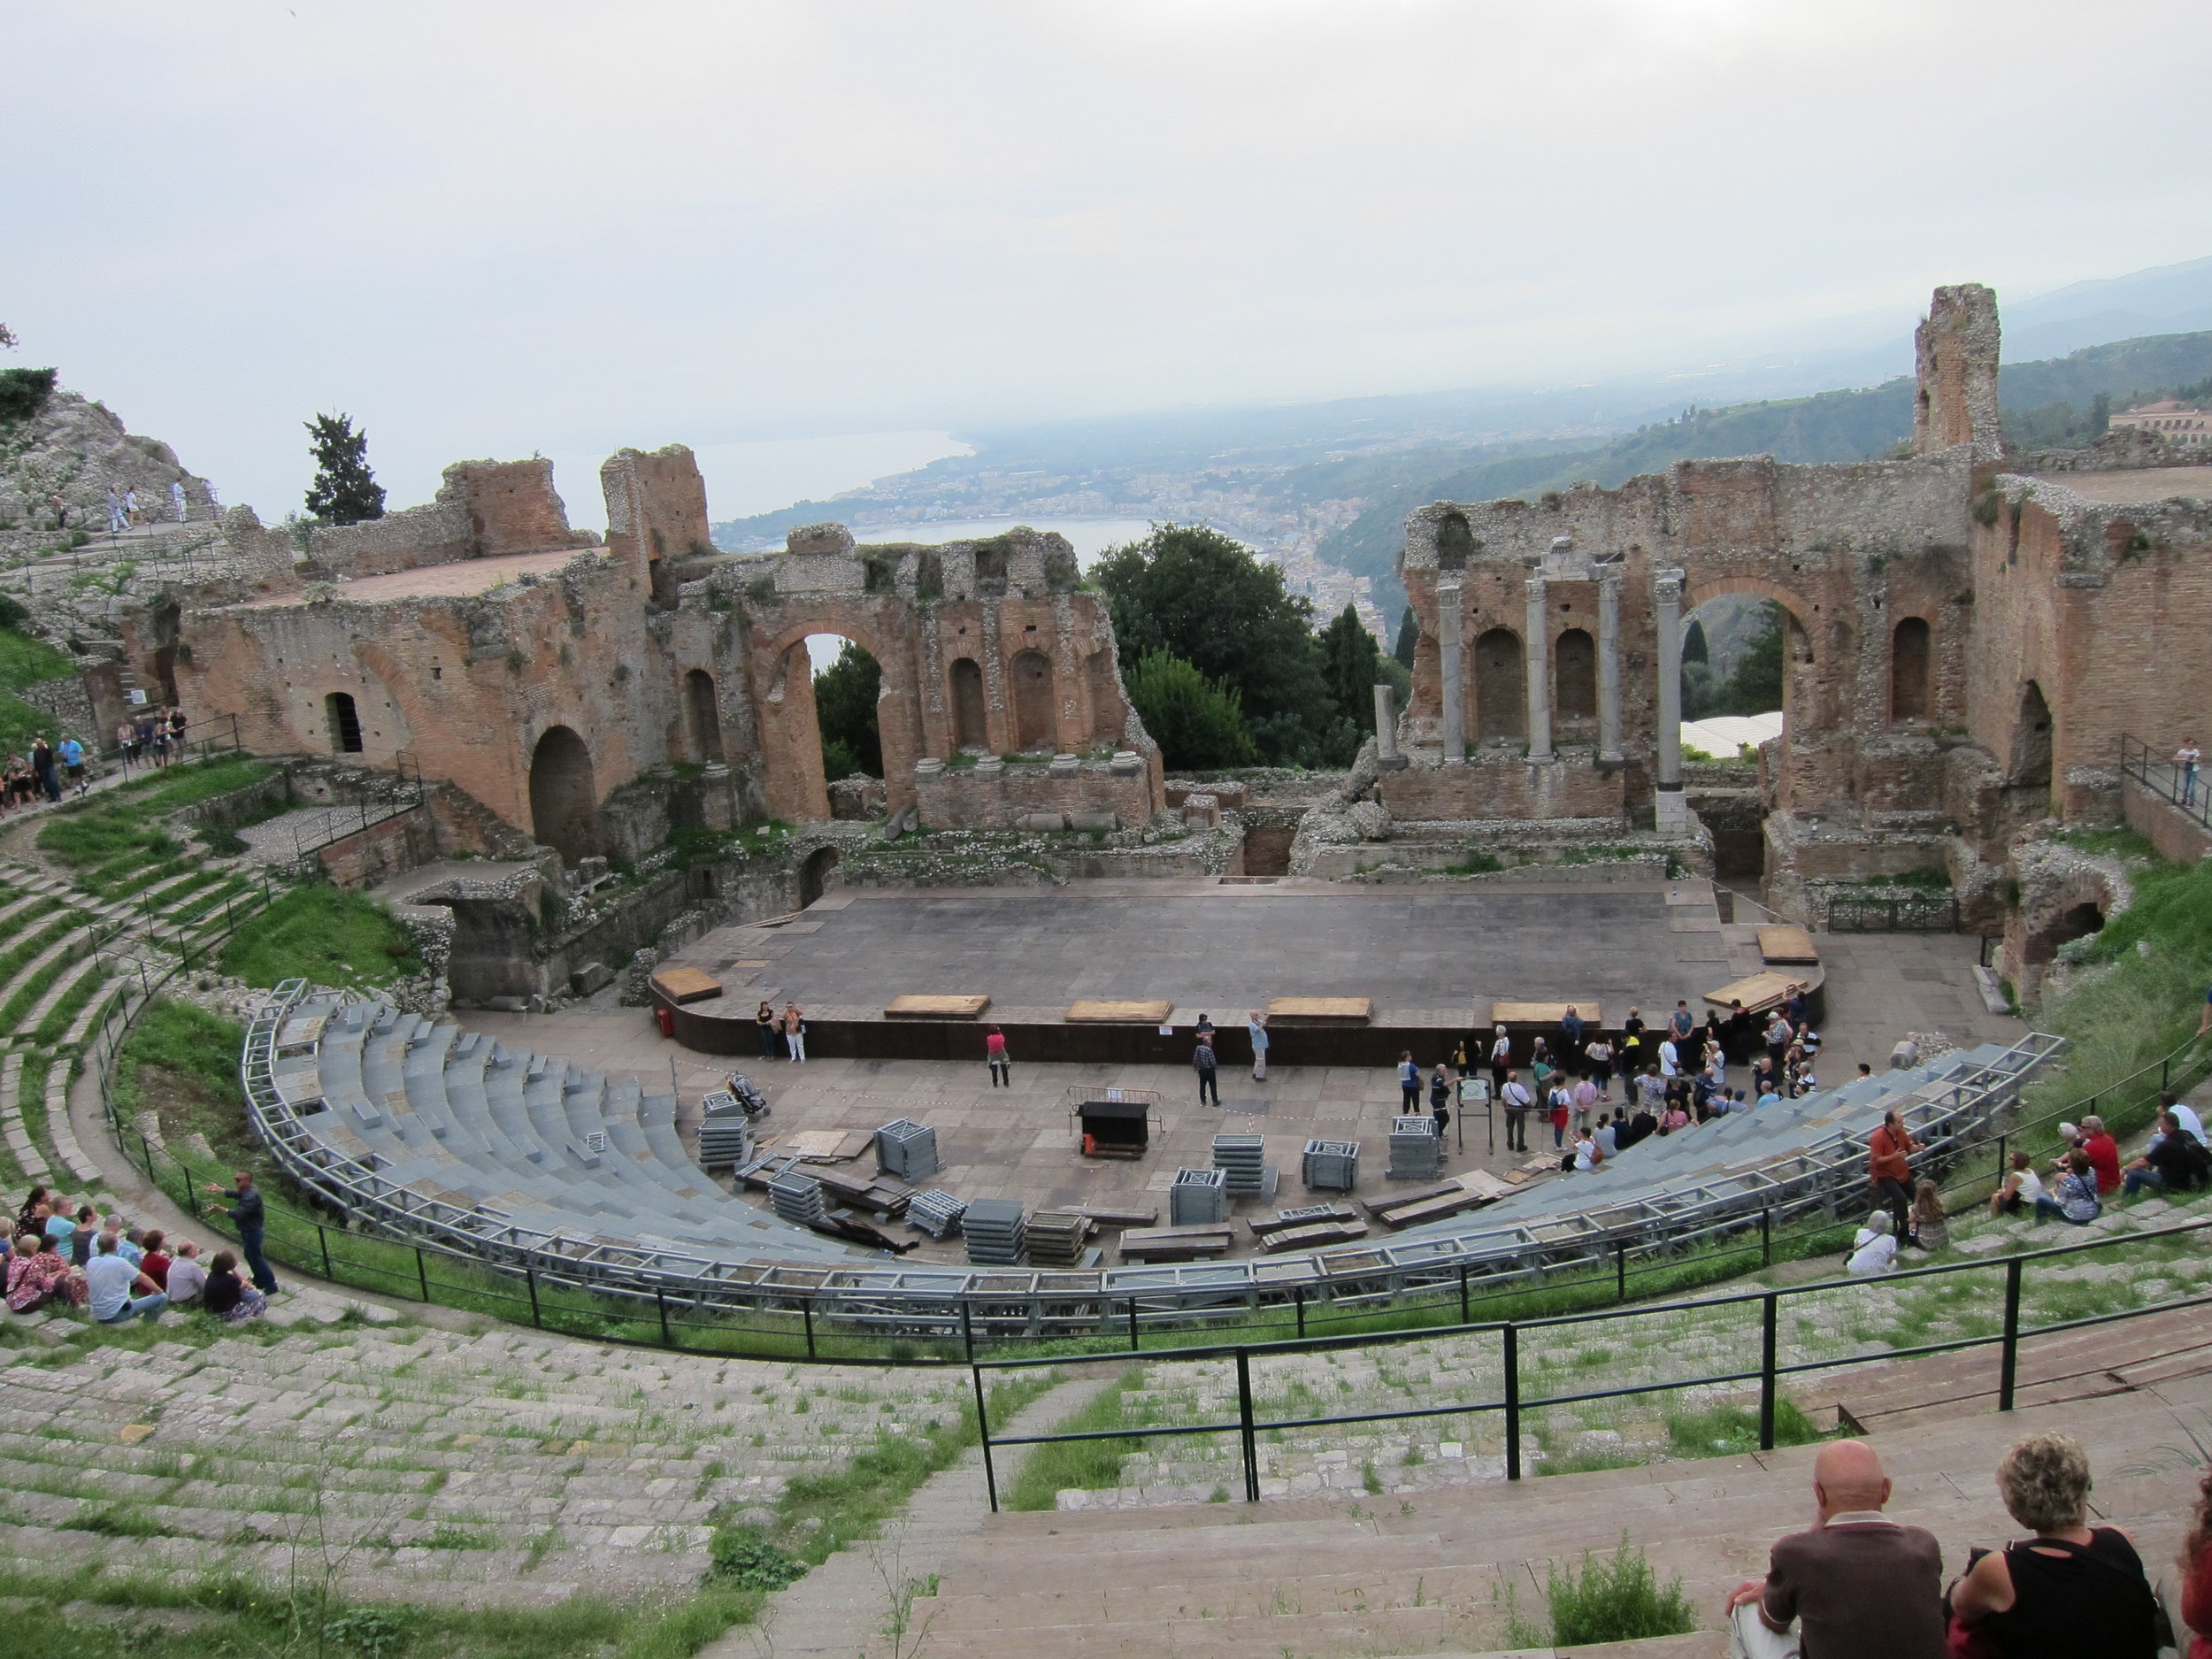 Roman theater in Taormina